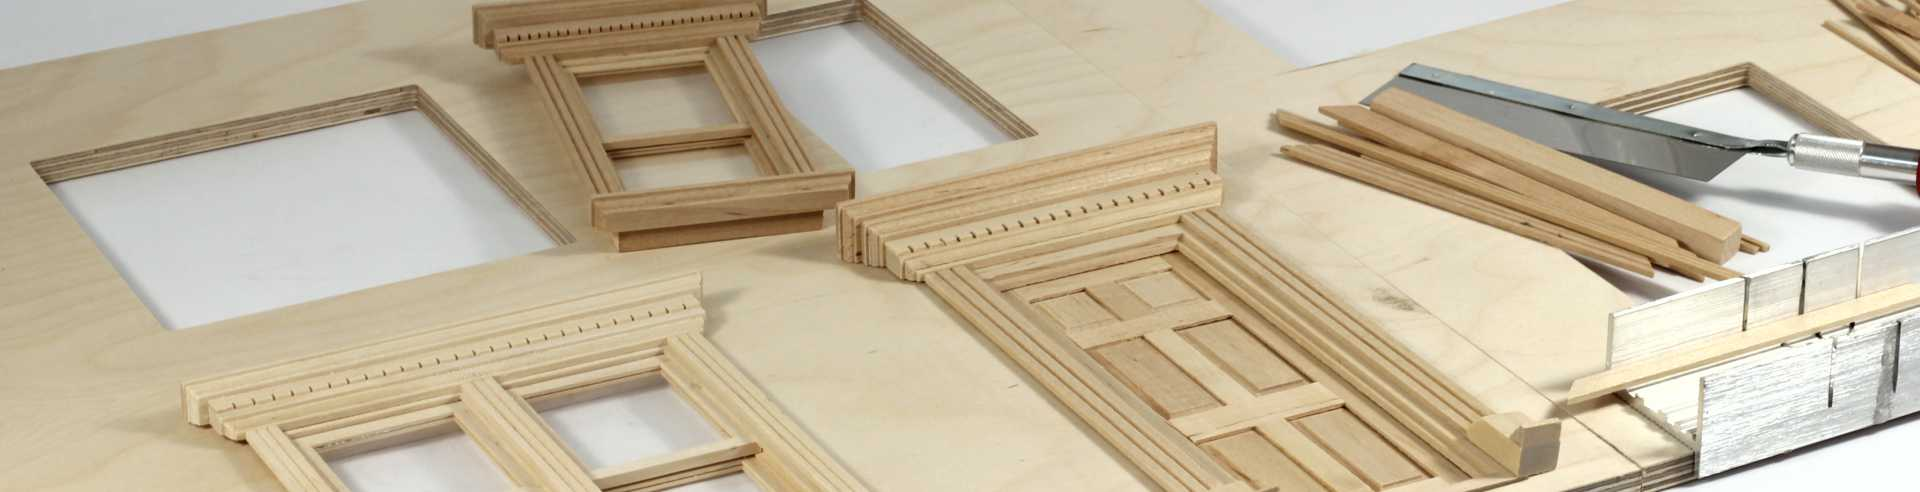 dolls house building components